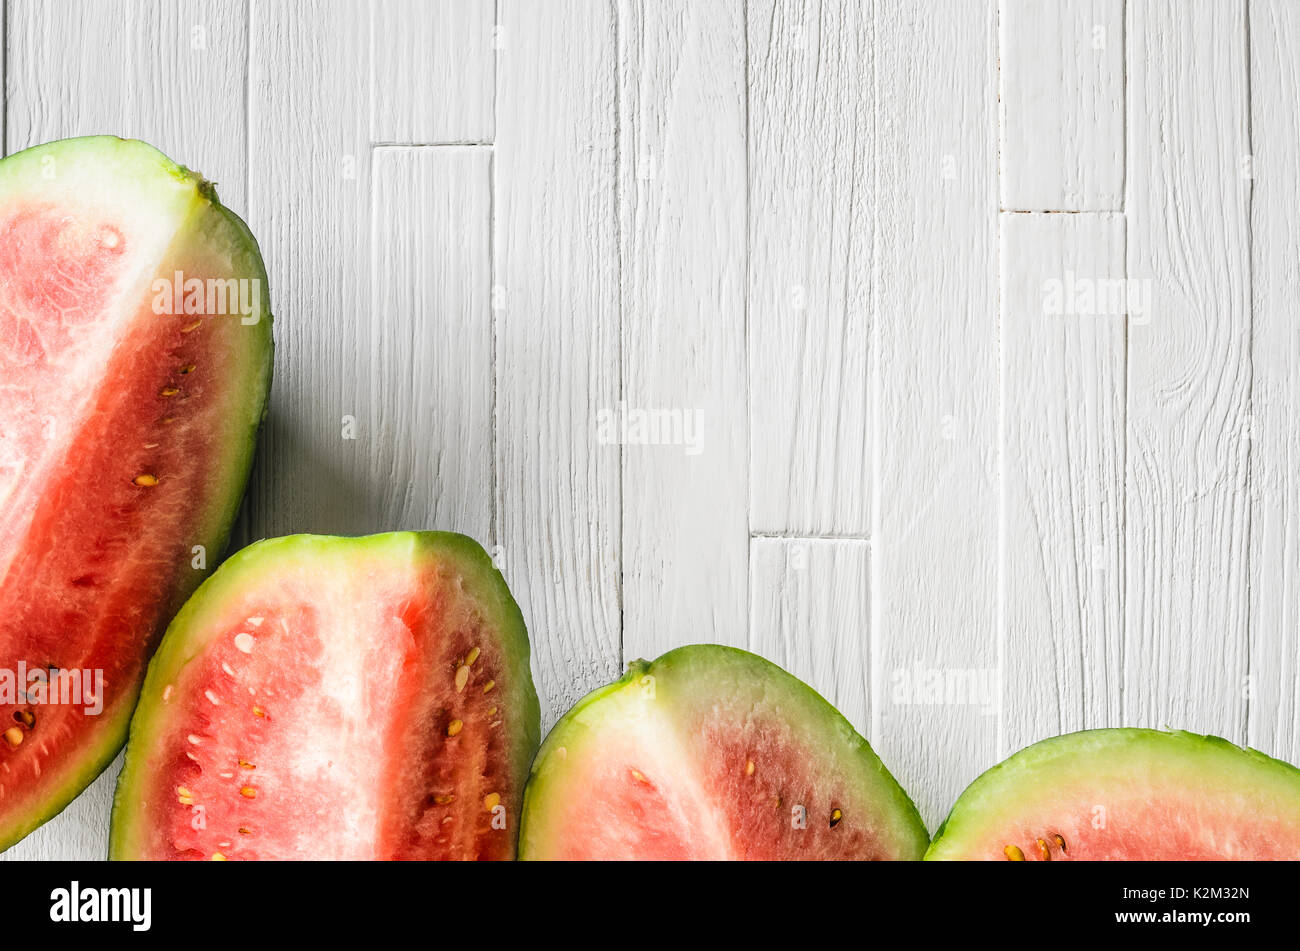 Watermelon slices on a light rustic wooden background top view. Copy space background with empty blank space for text - Stock Image